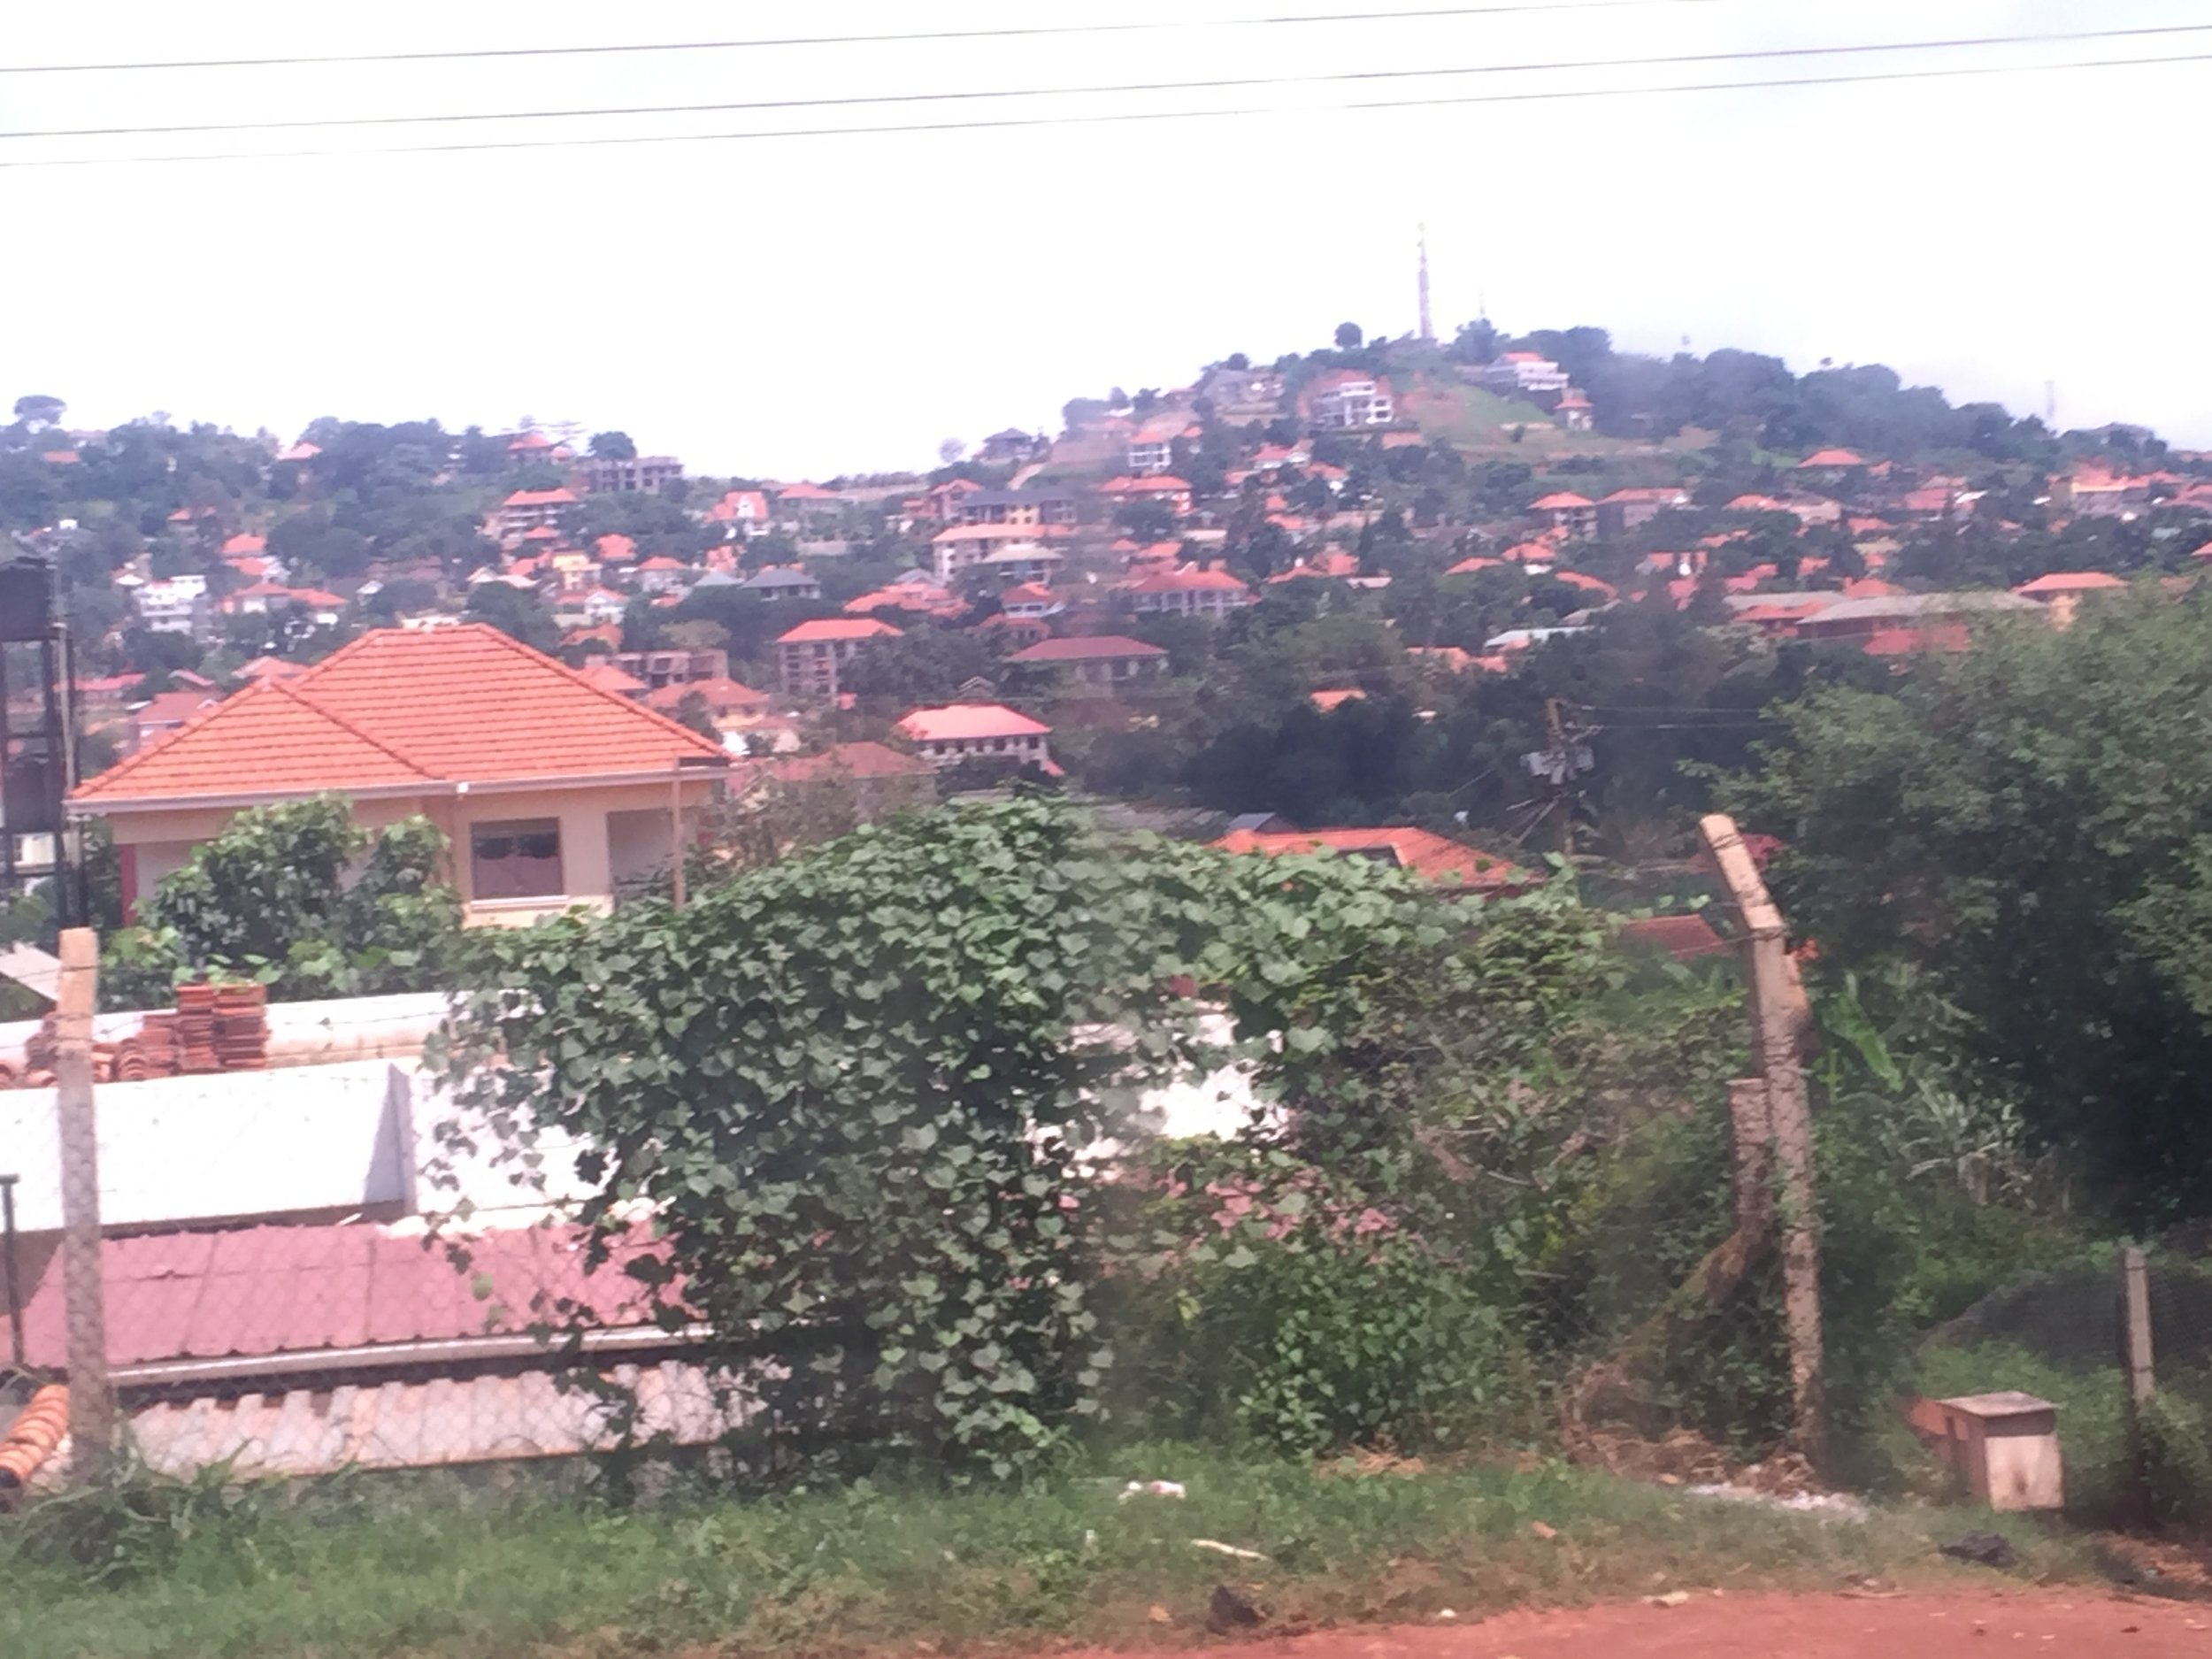 A quick view of the countryside near Kampala, Uganda.